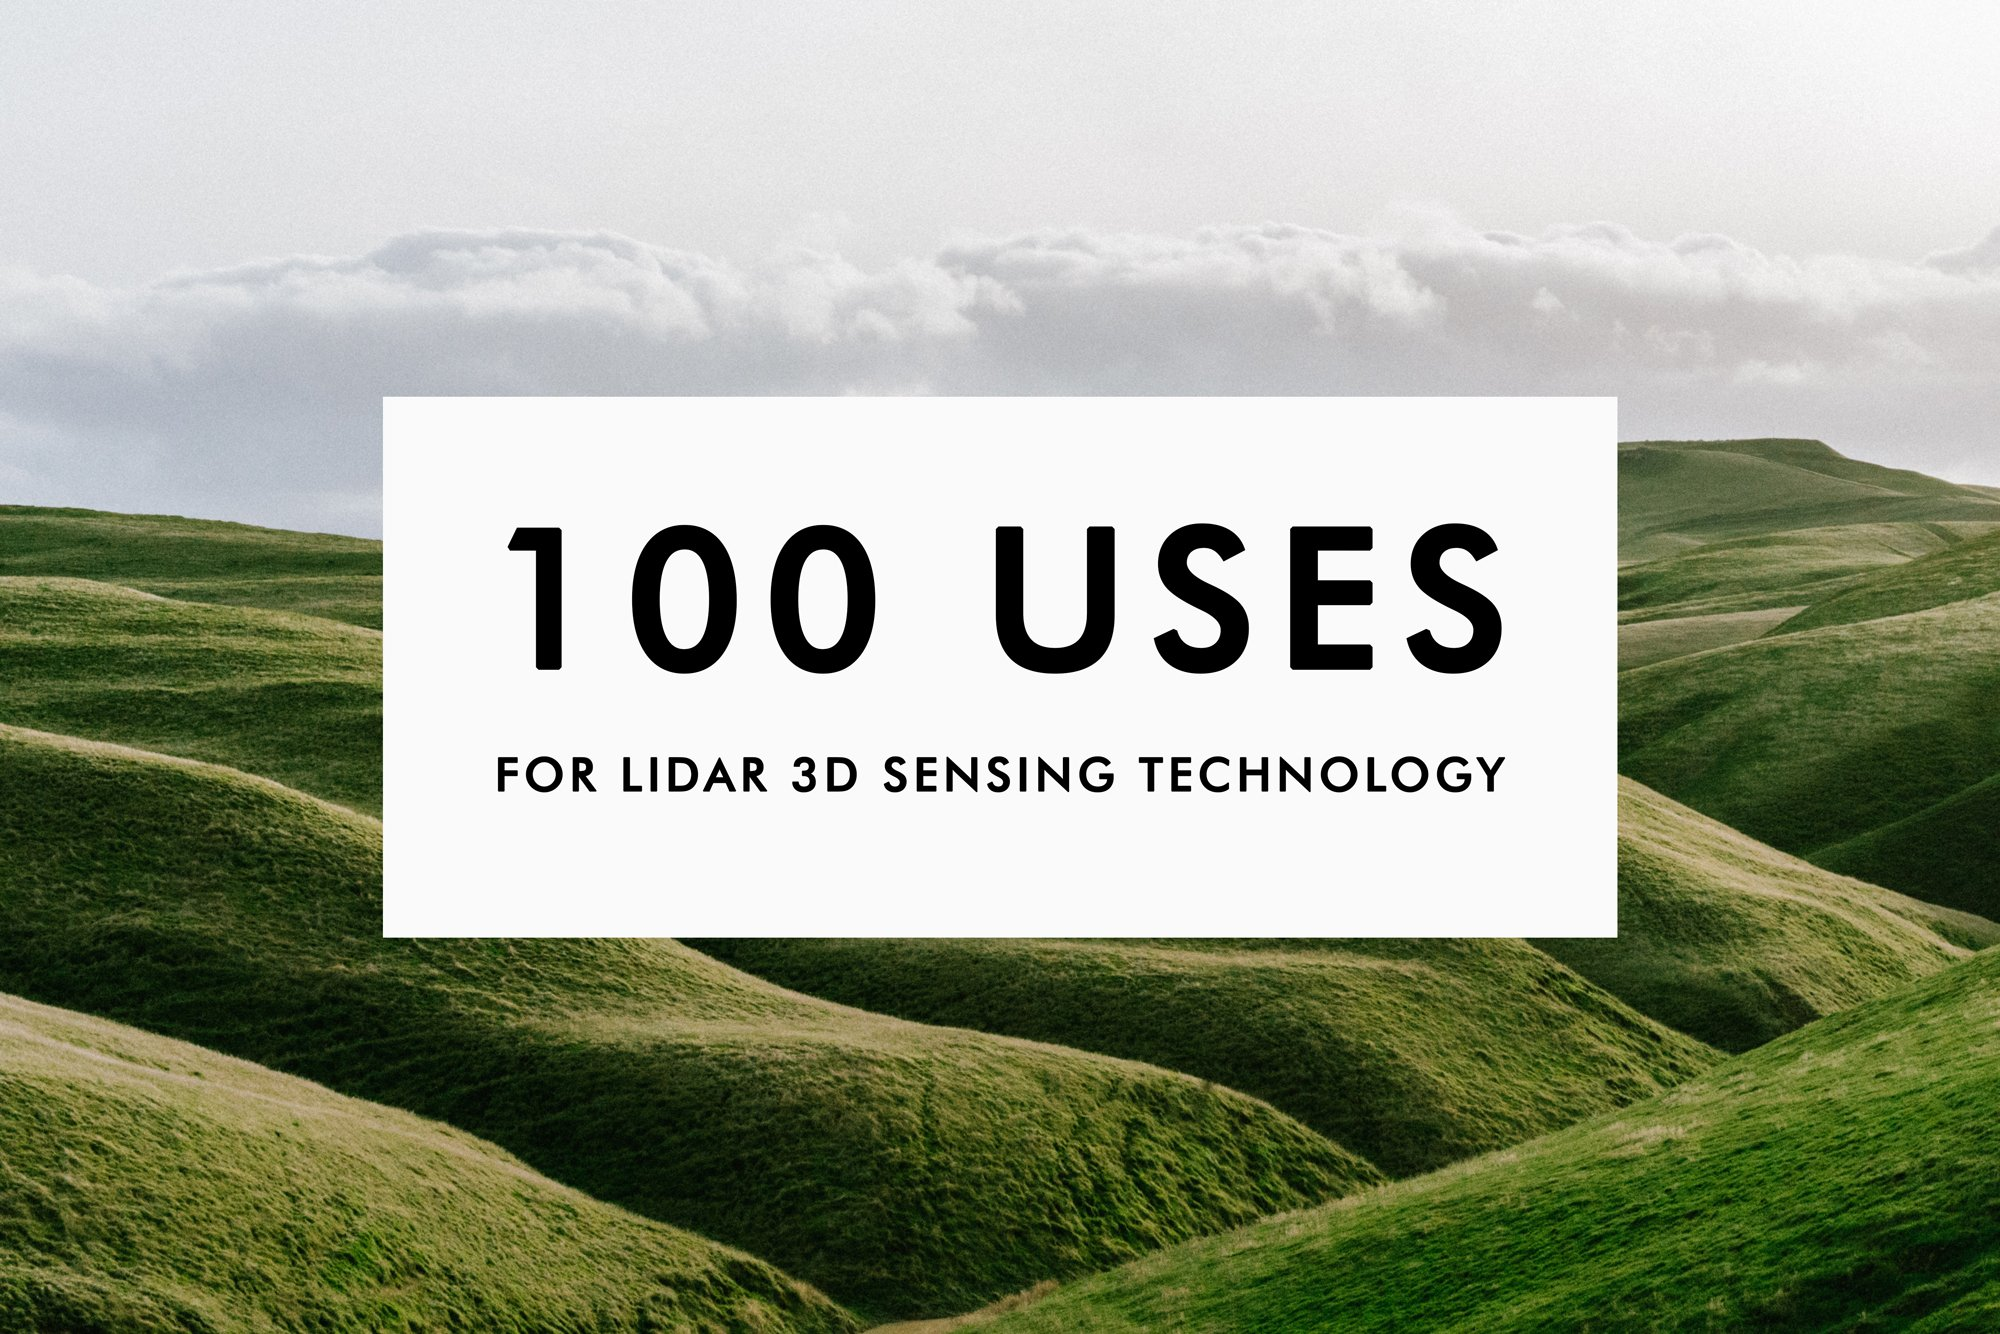 100 uses lidar technology